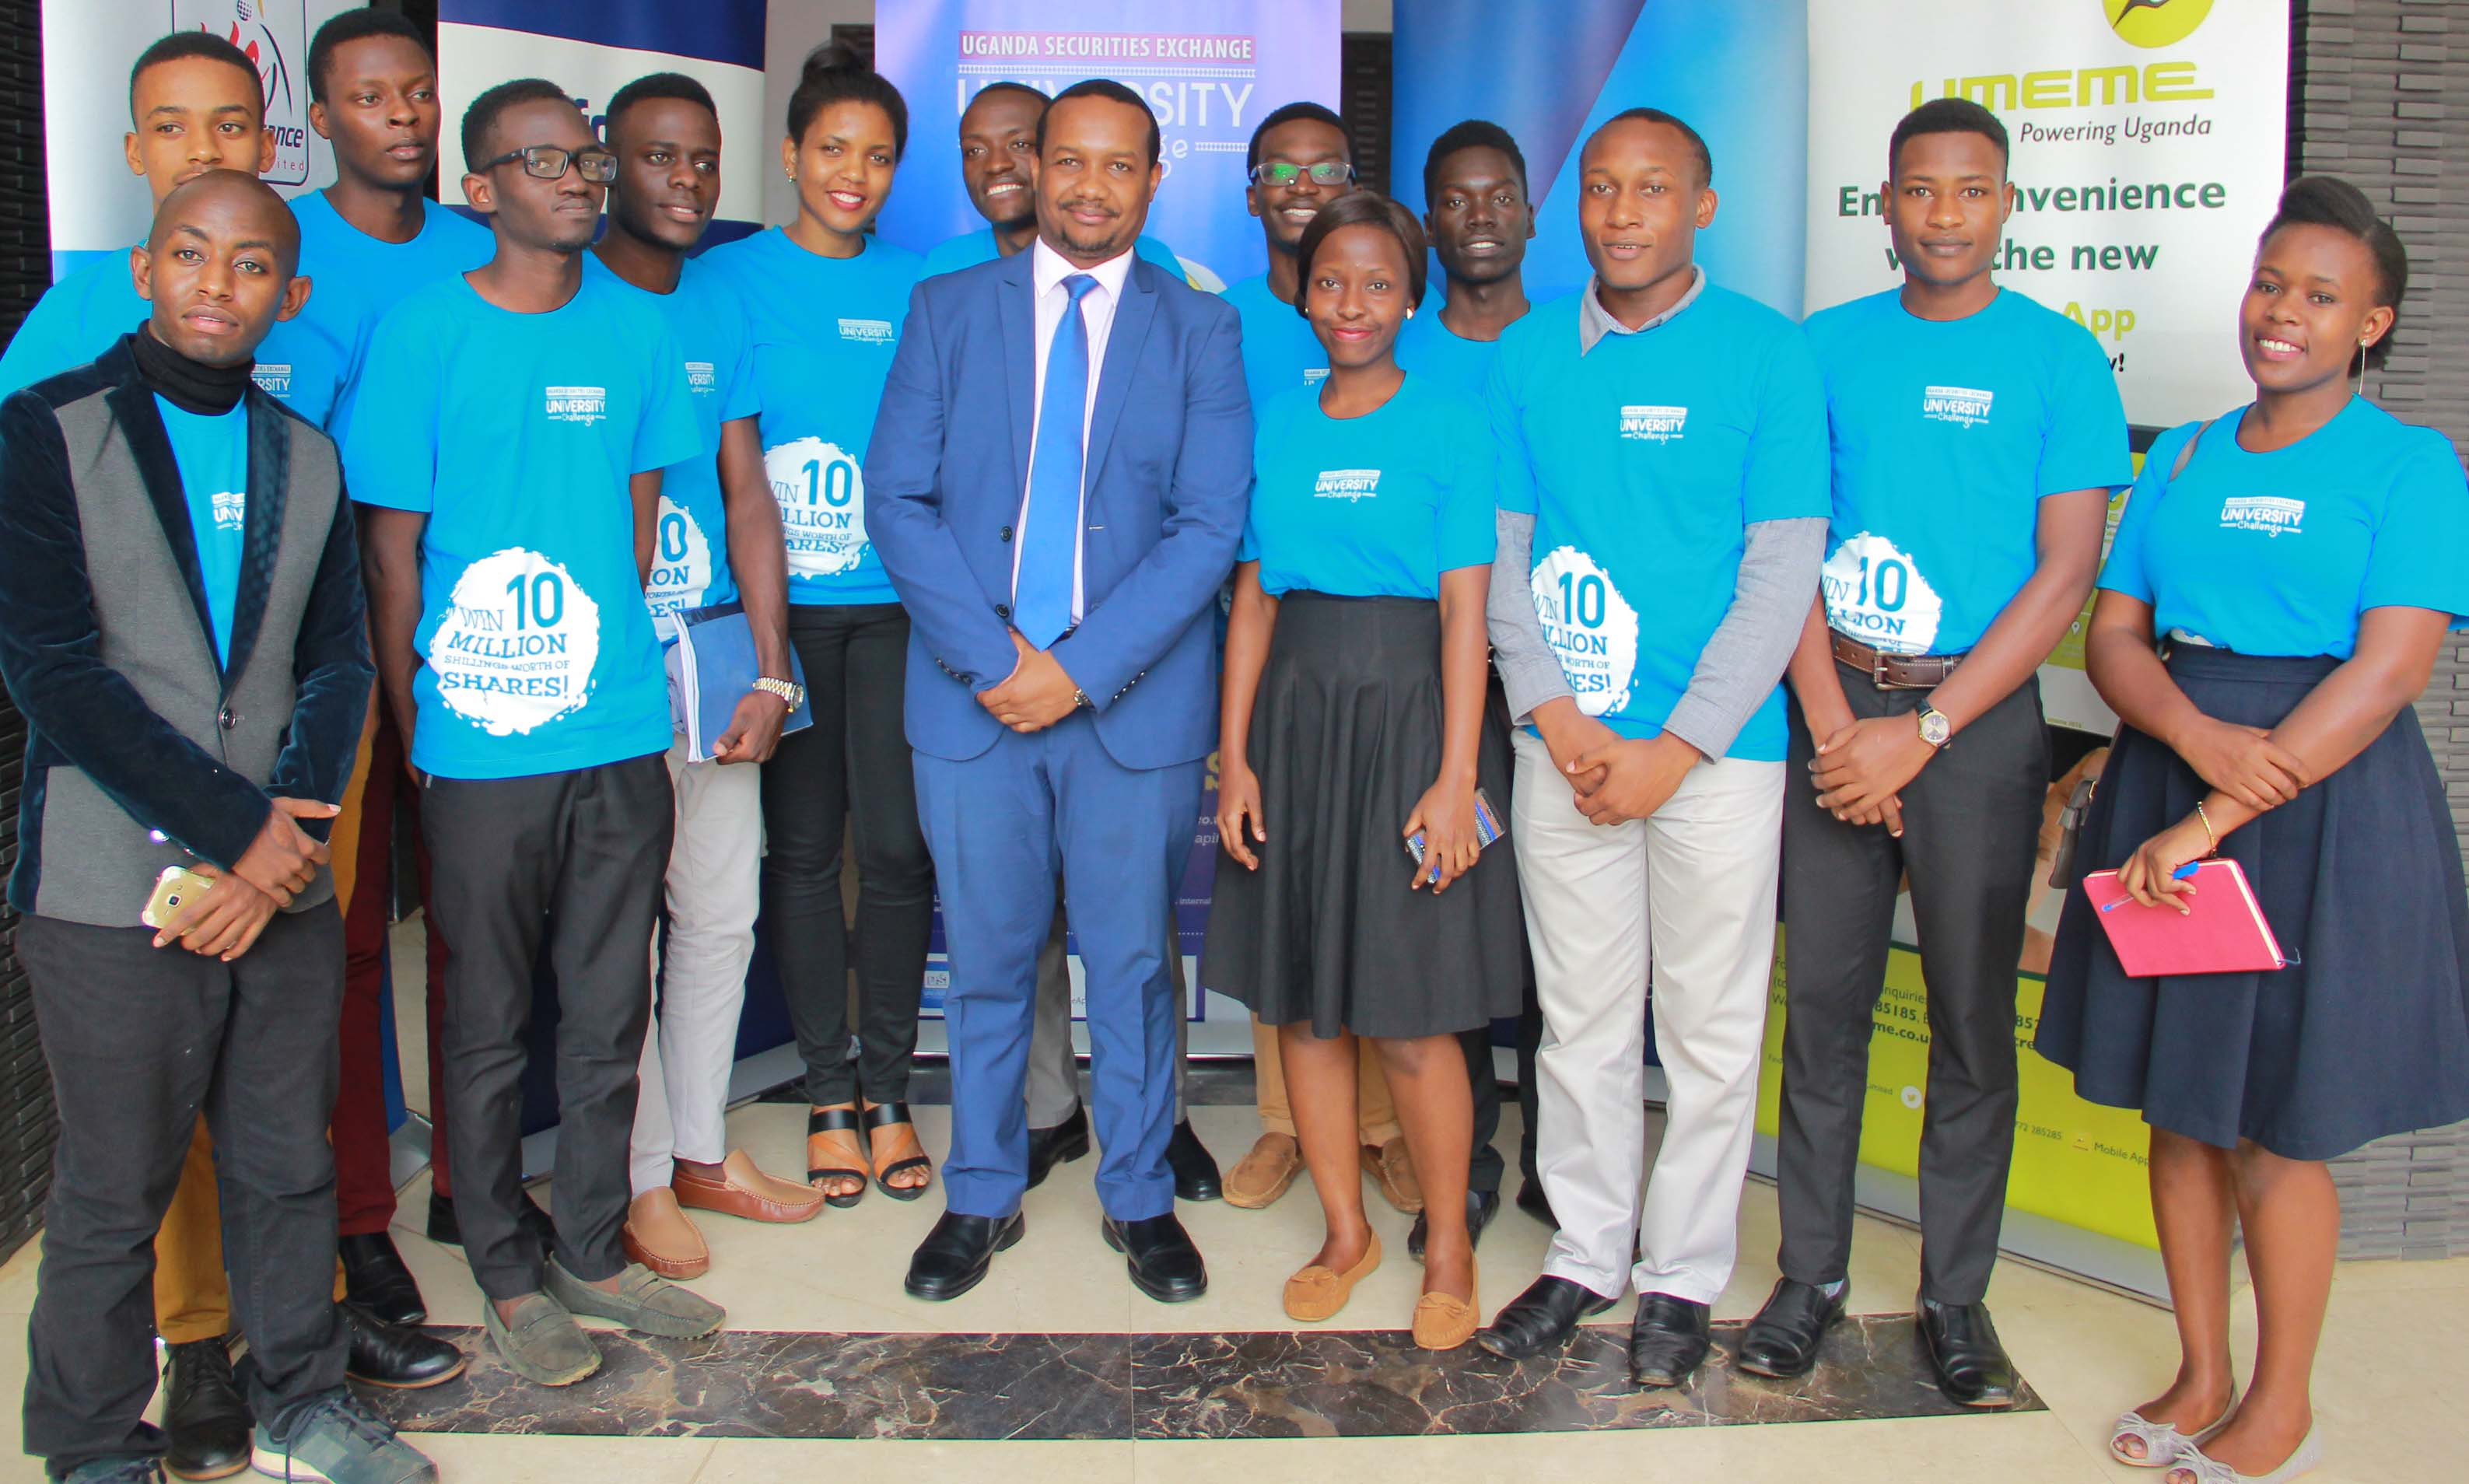 Paul Bwiso (R) CEO Uganda Securities Exchange poses with students during the launch of the USE University Challenge.